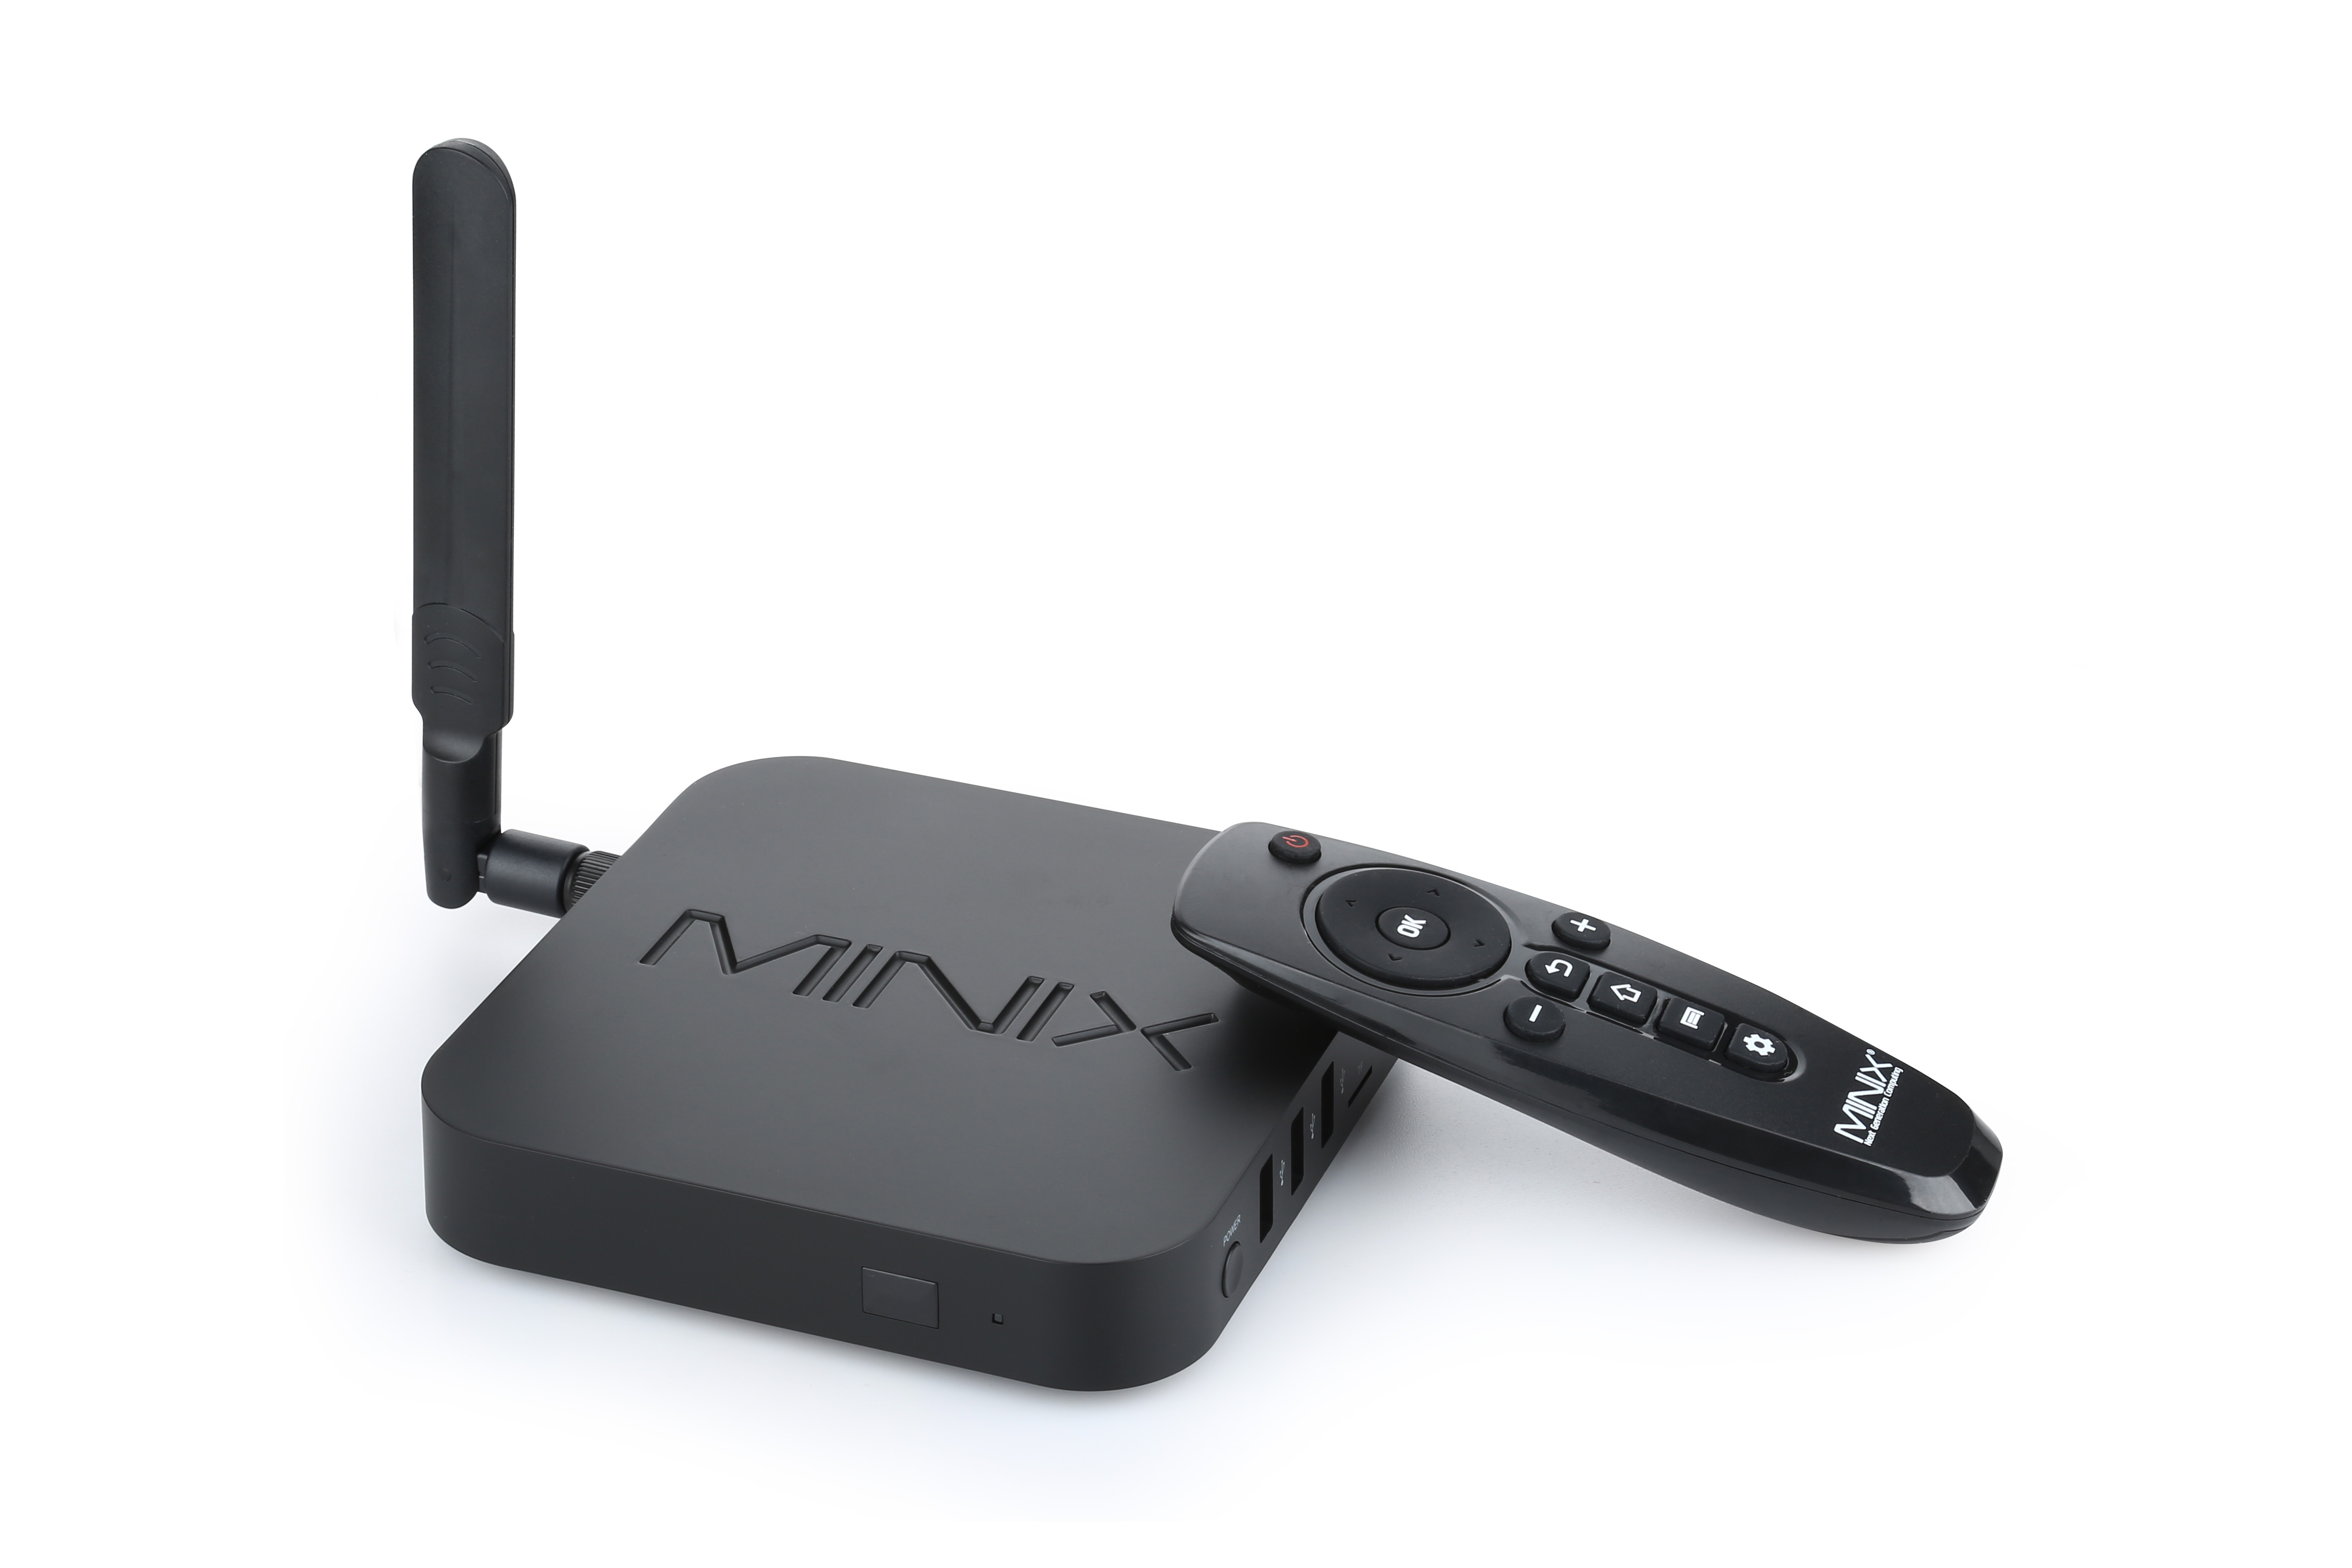 Minix U1 with remote